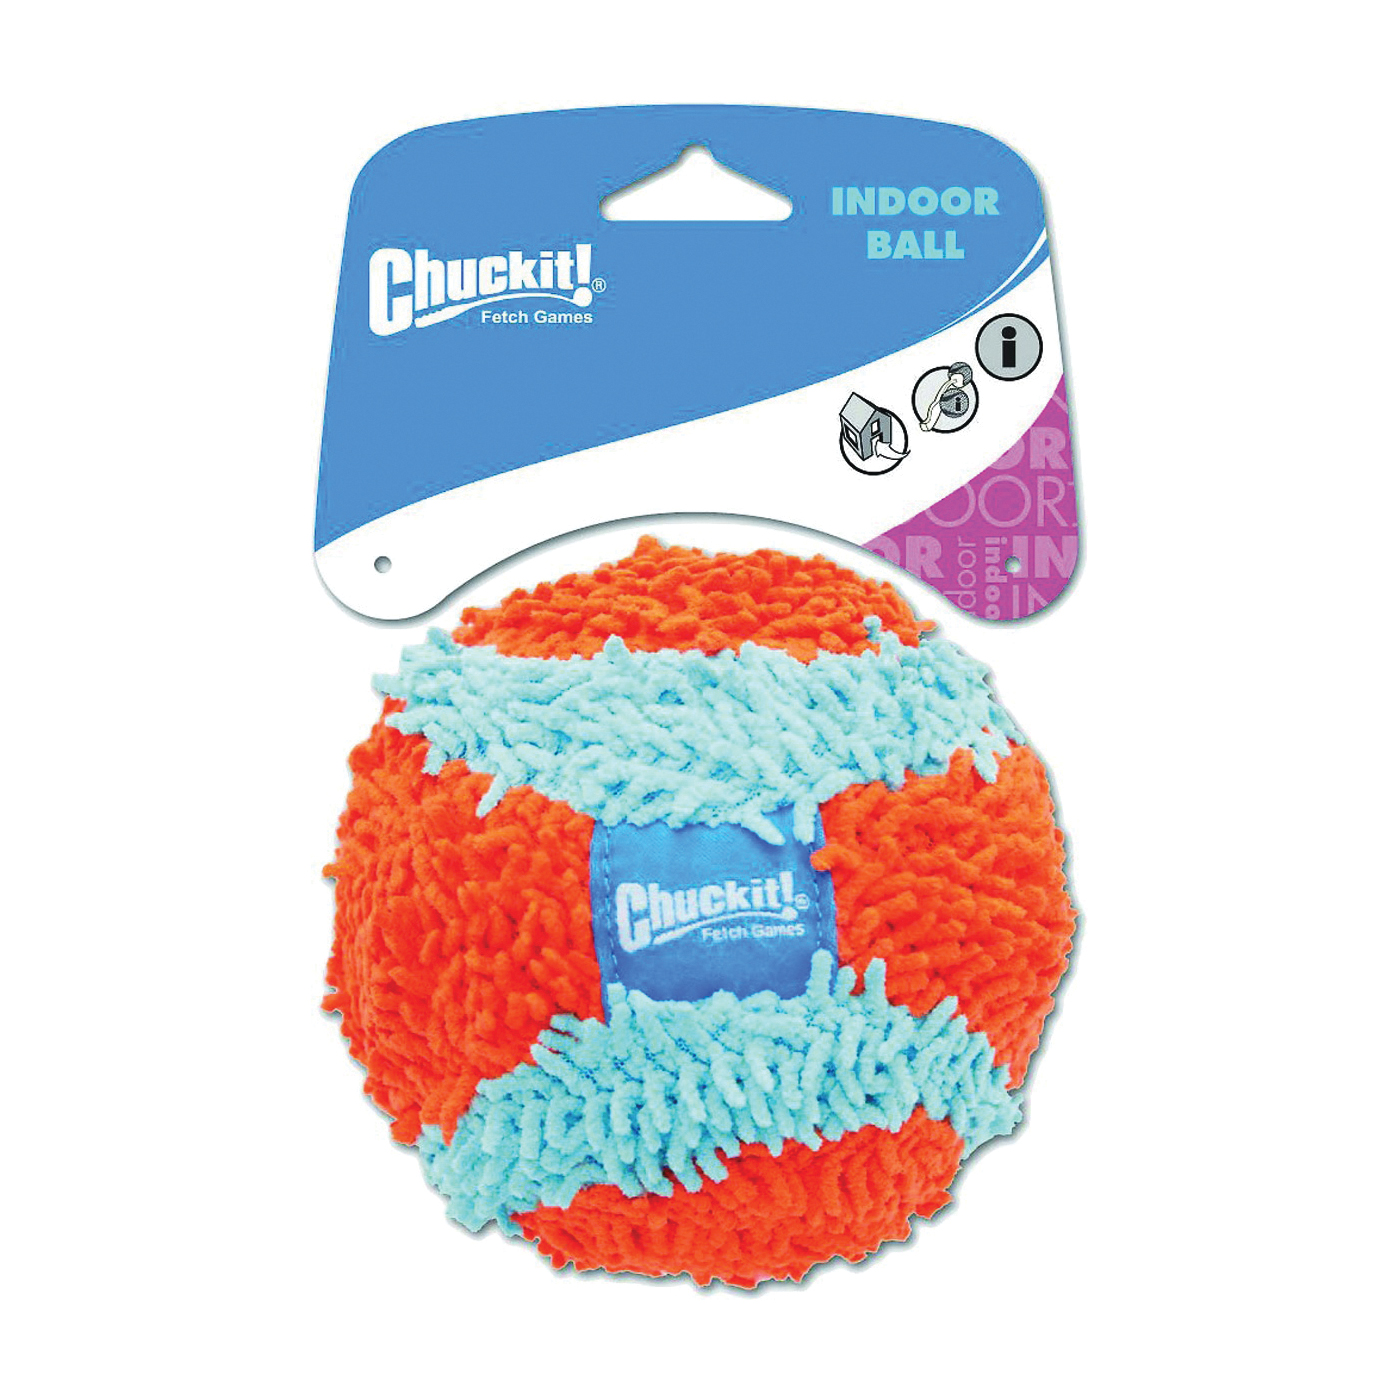 Picture of Chuckit! 213201 Pet Ball, M, Indoor Toy, Chenille, Blue/Orange